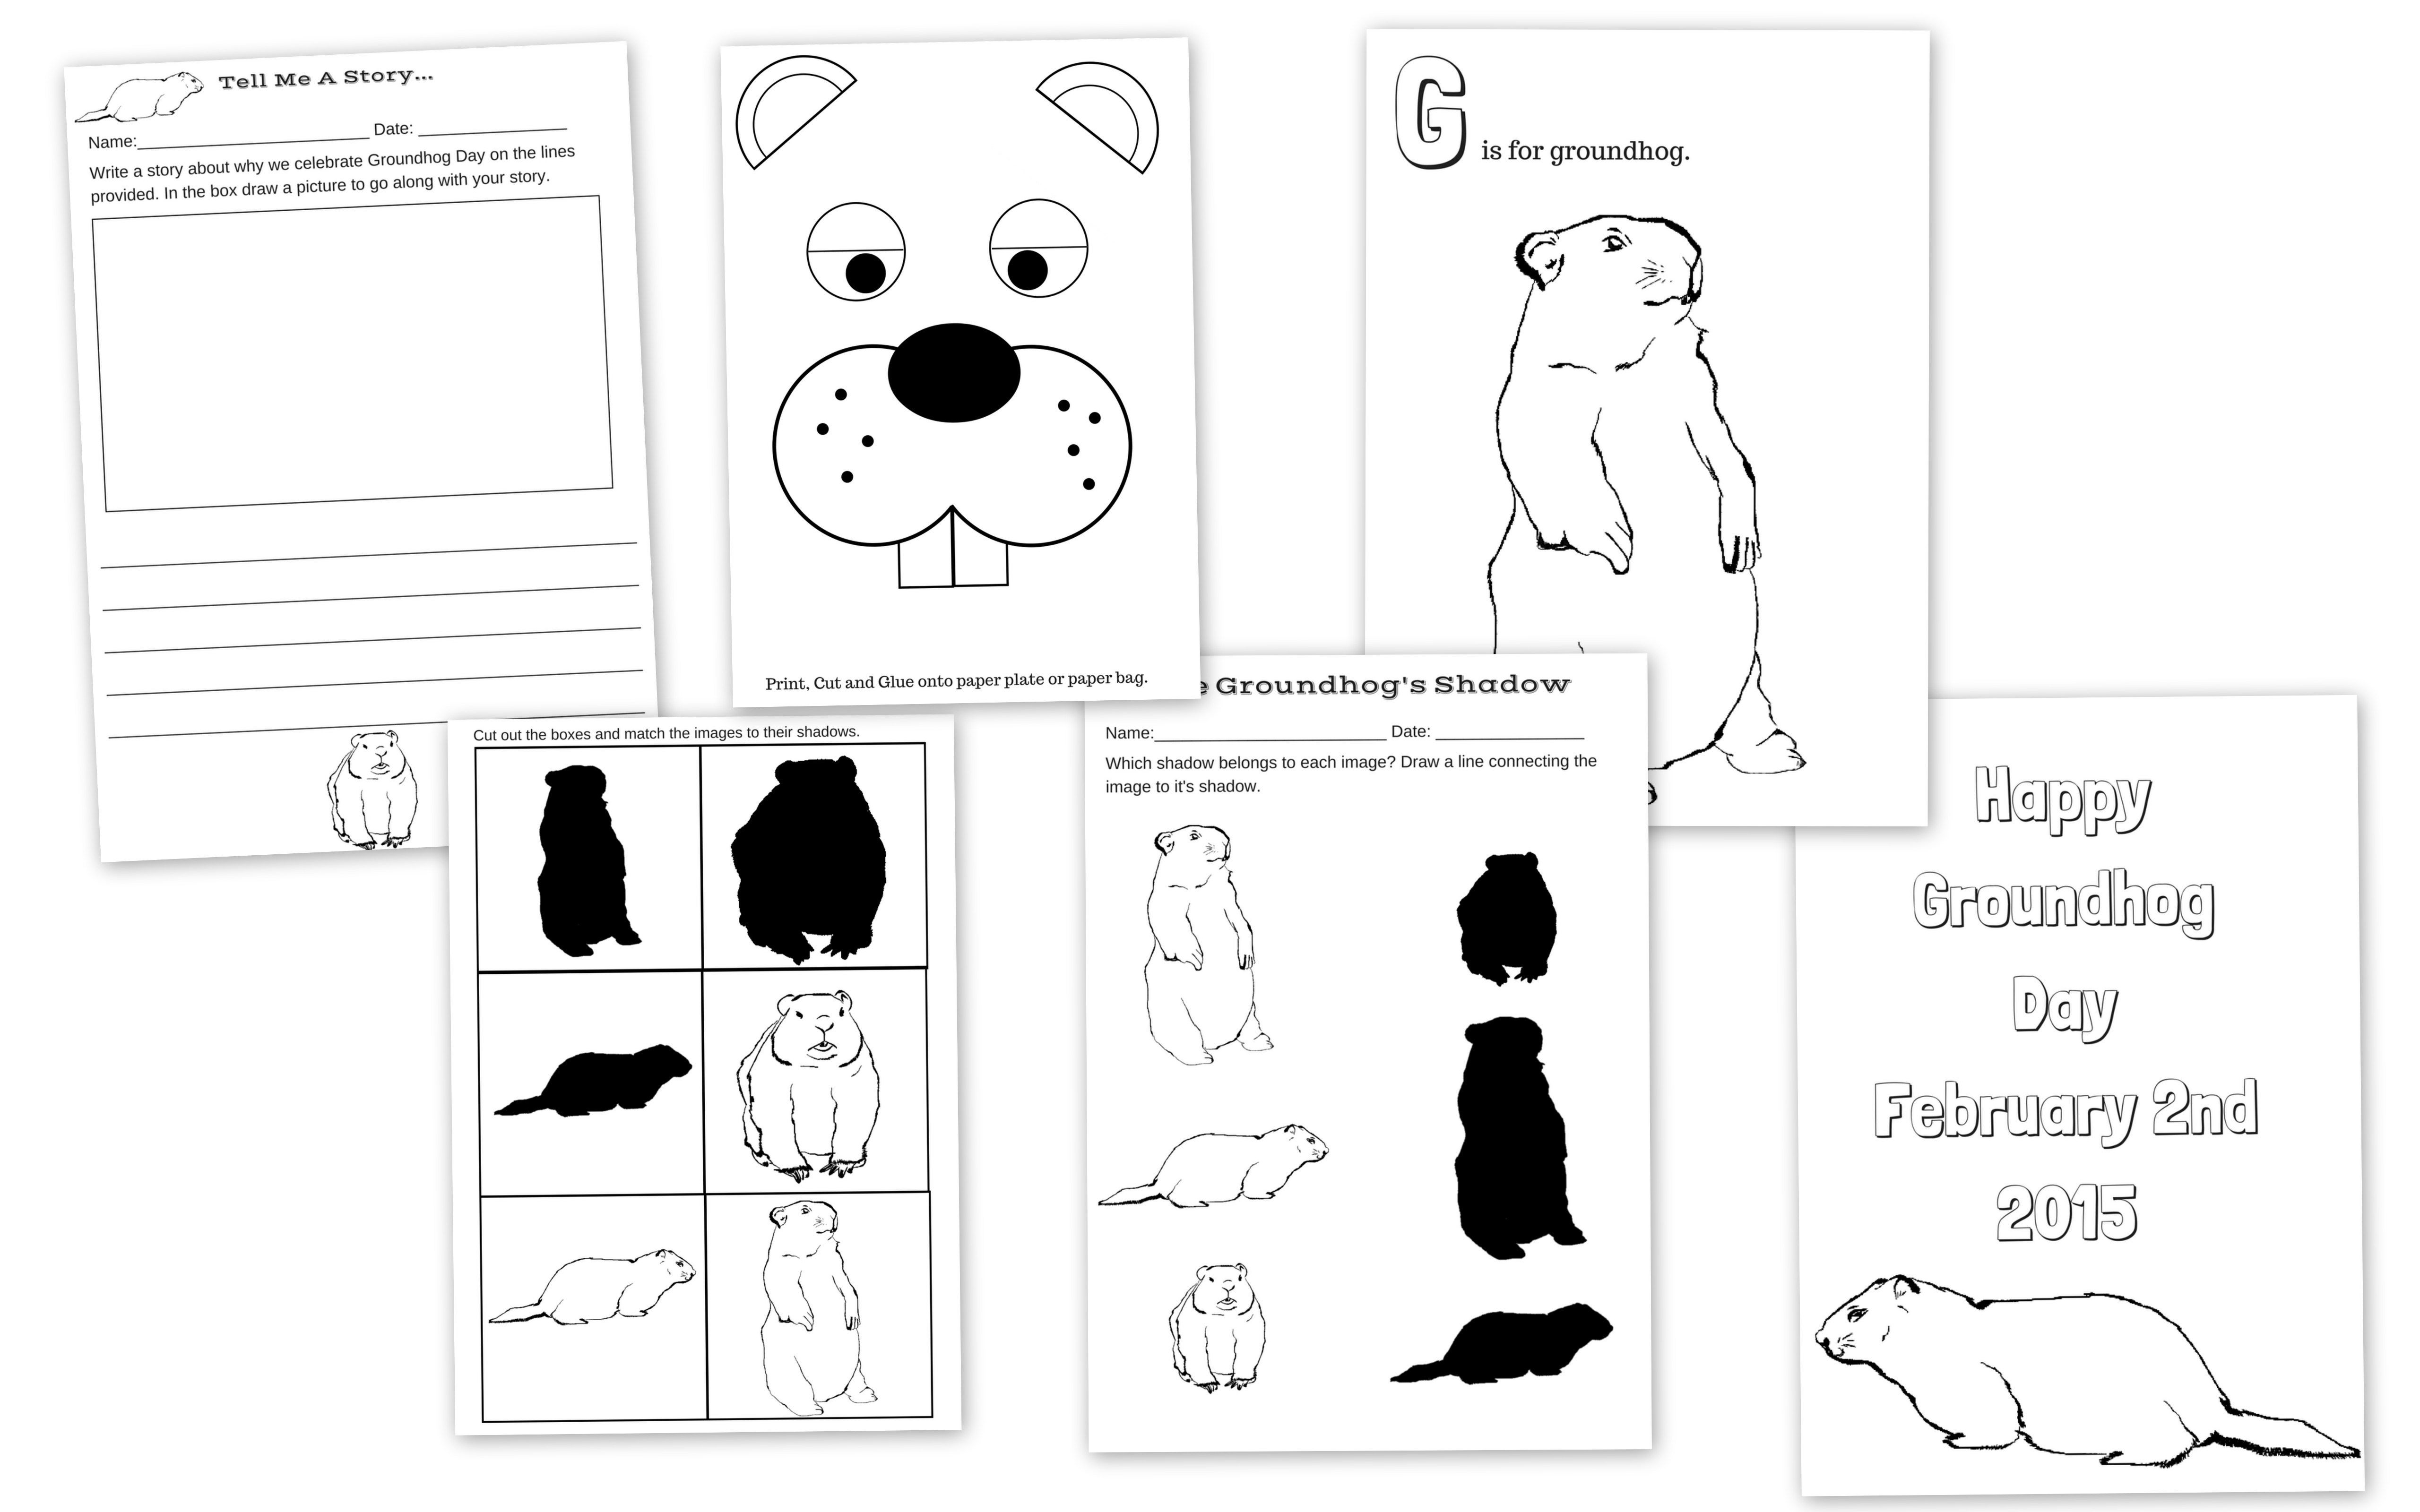 Happy Groundhog Day Groundhog Day Free Printable Activity